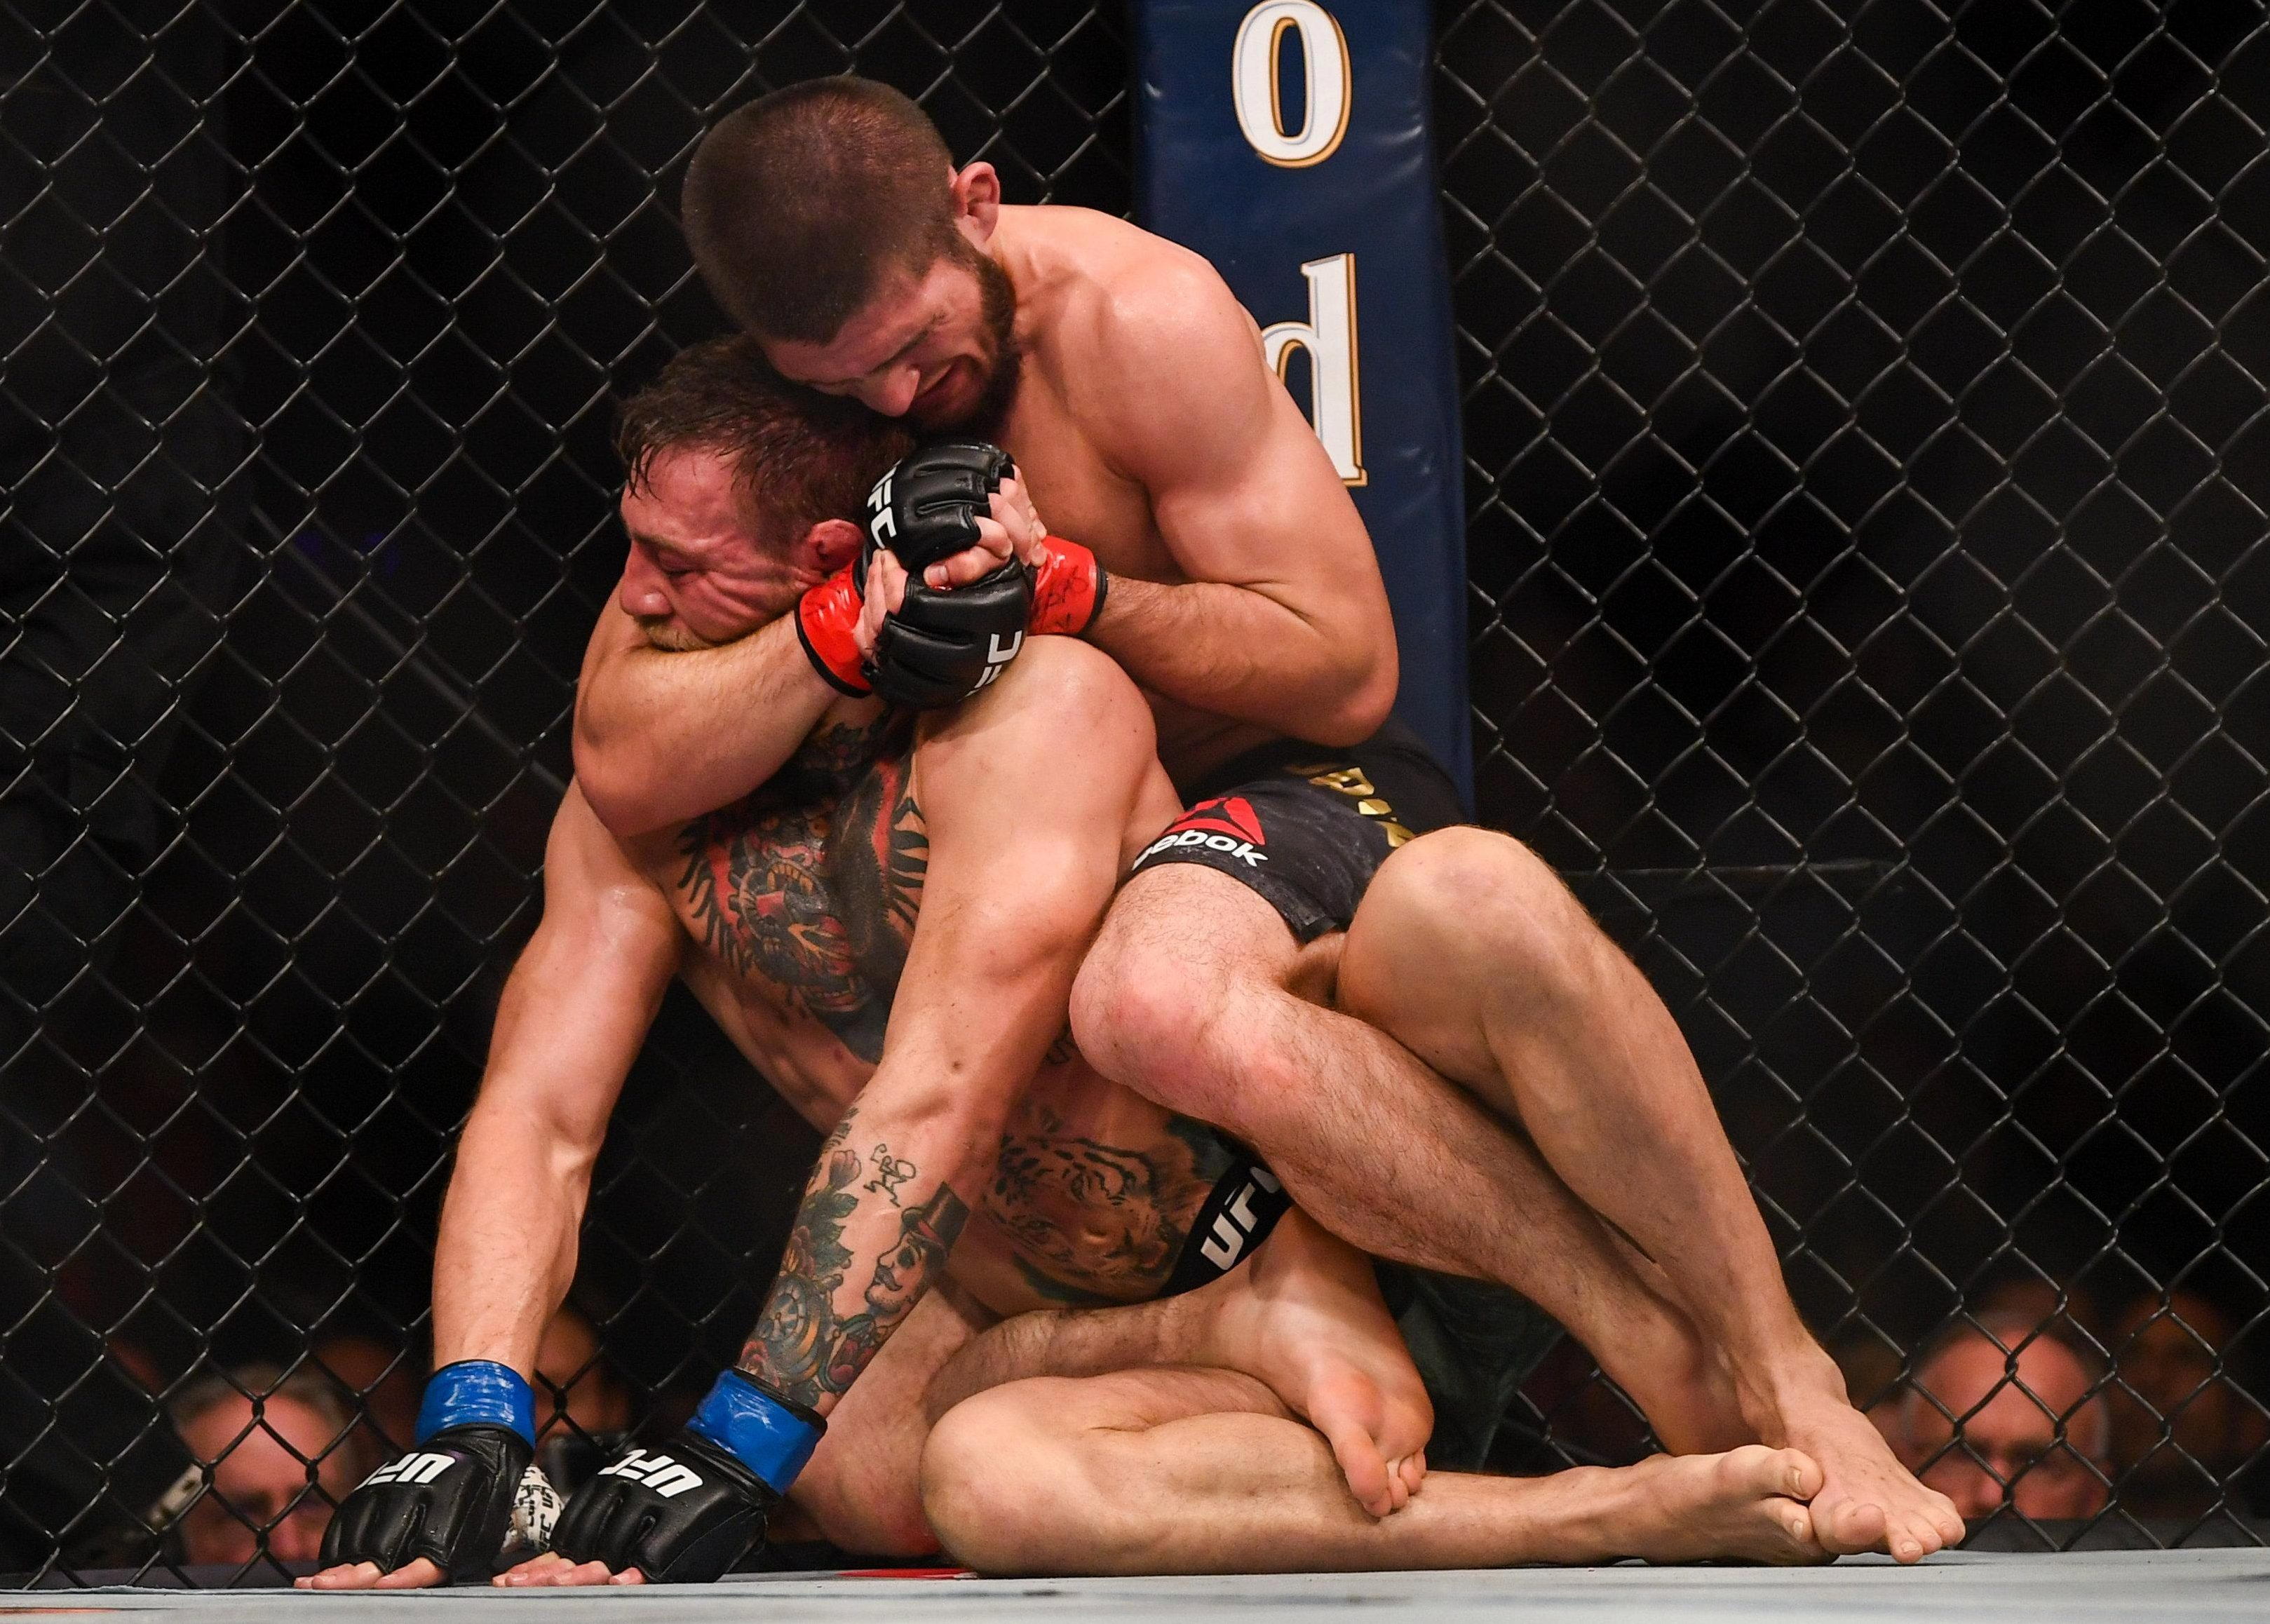 Conor McGregor is determined to have a rematch with Khabib Nurmagomedov